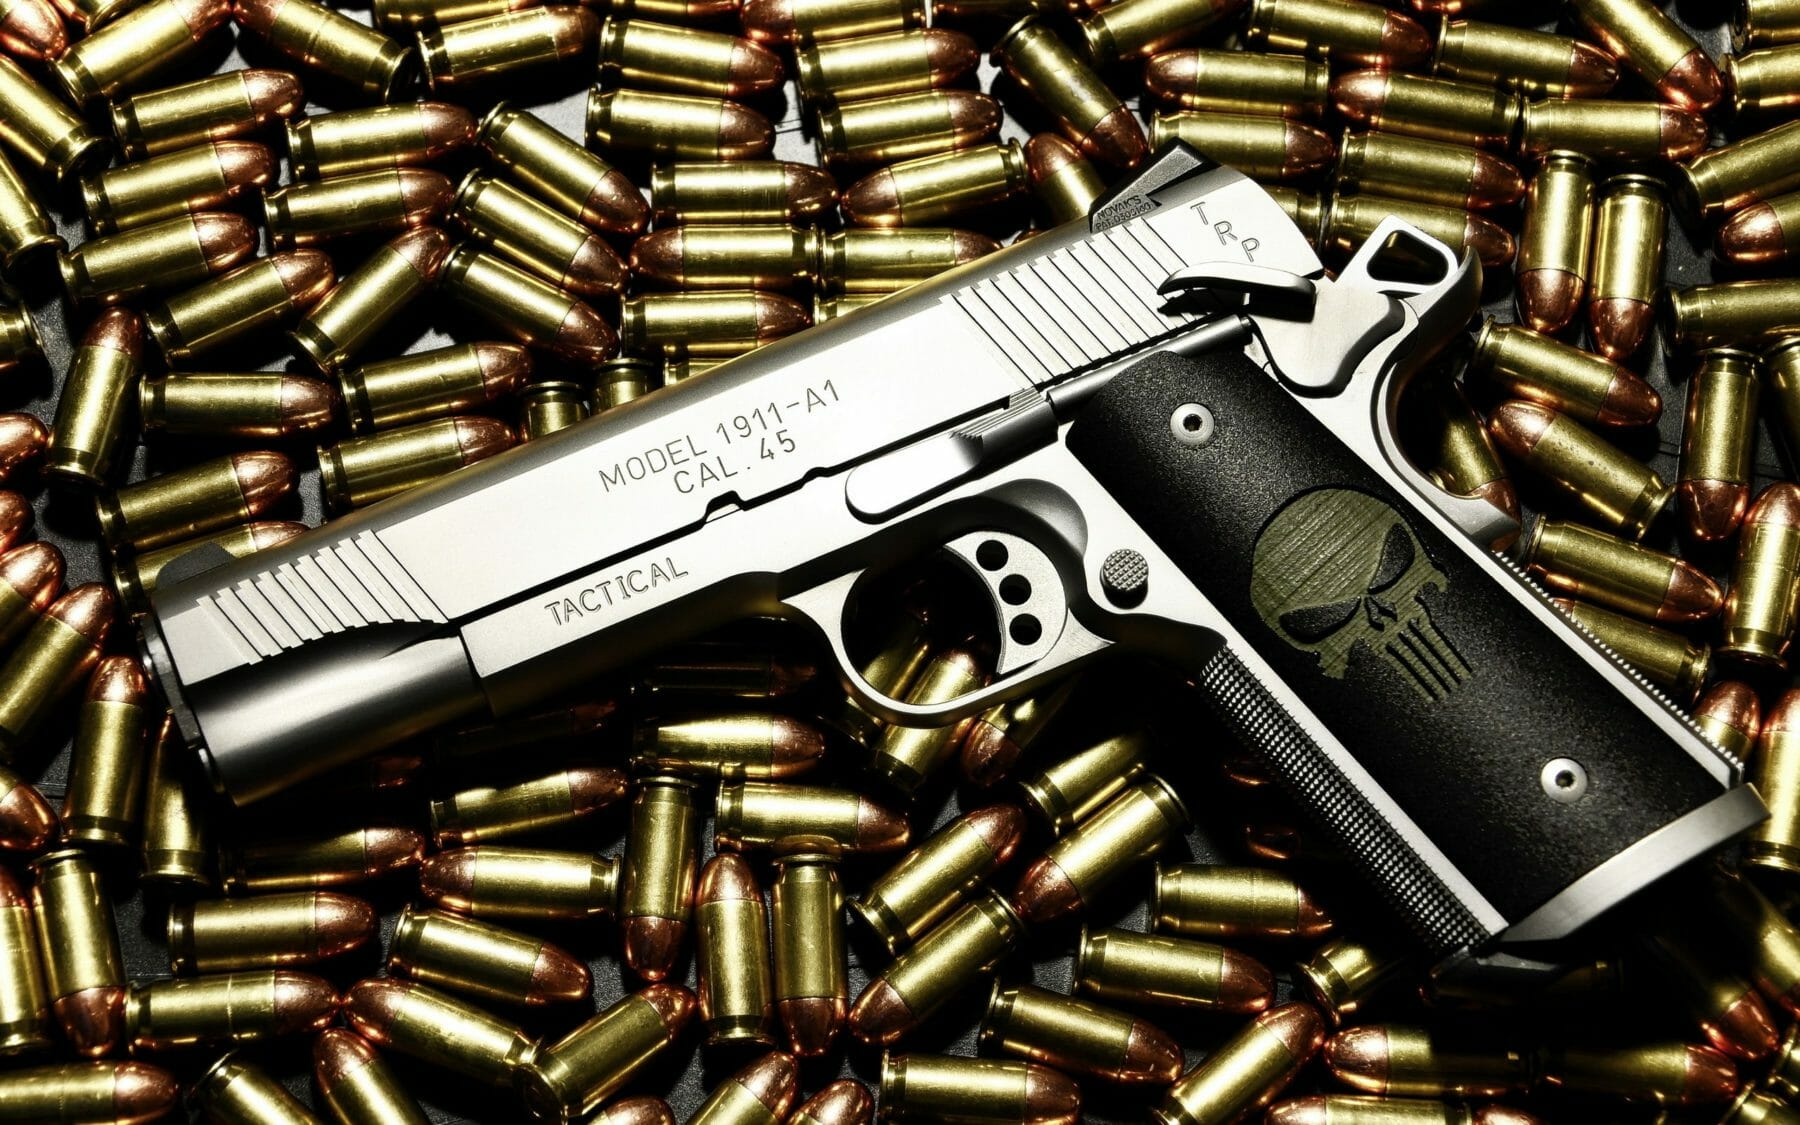 Men with firearm prohibitions arrested with guns